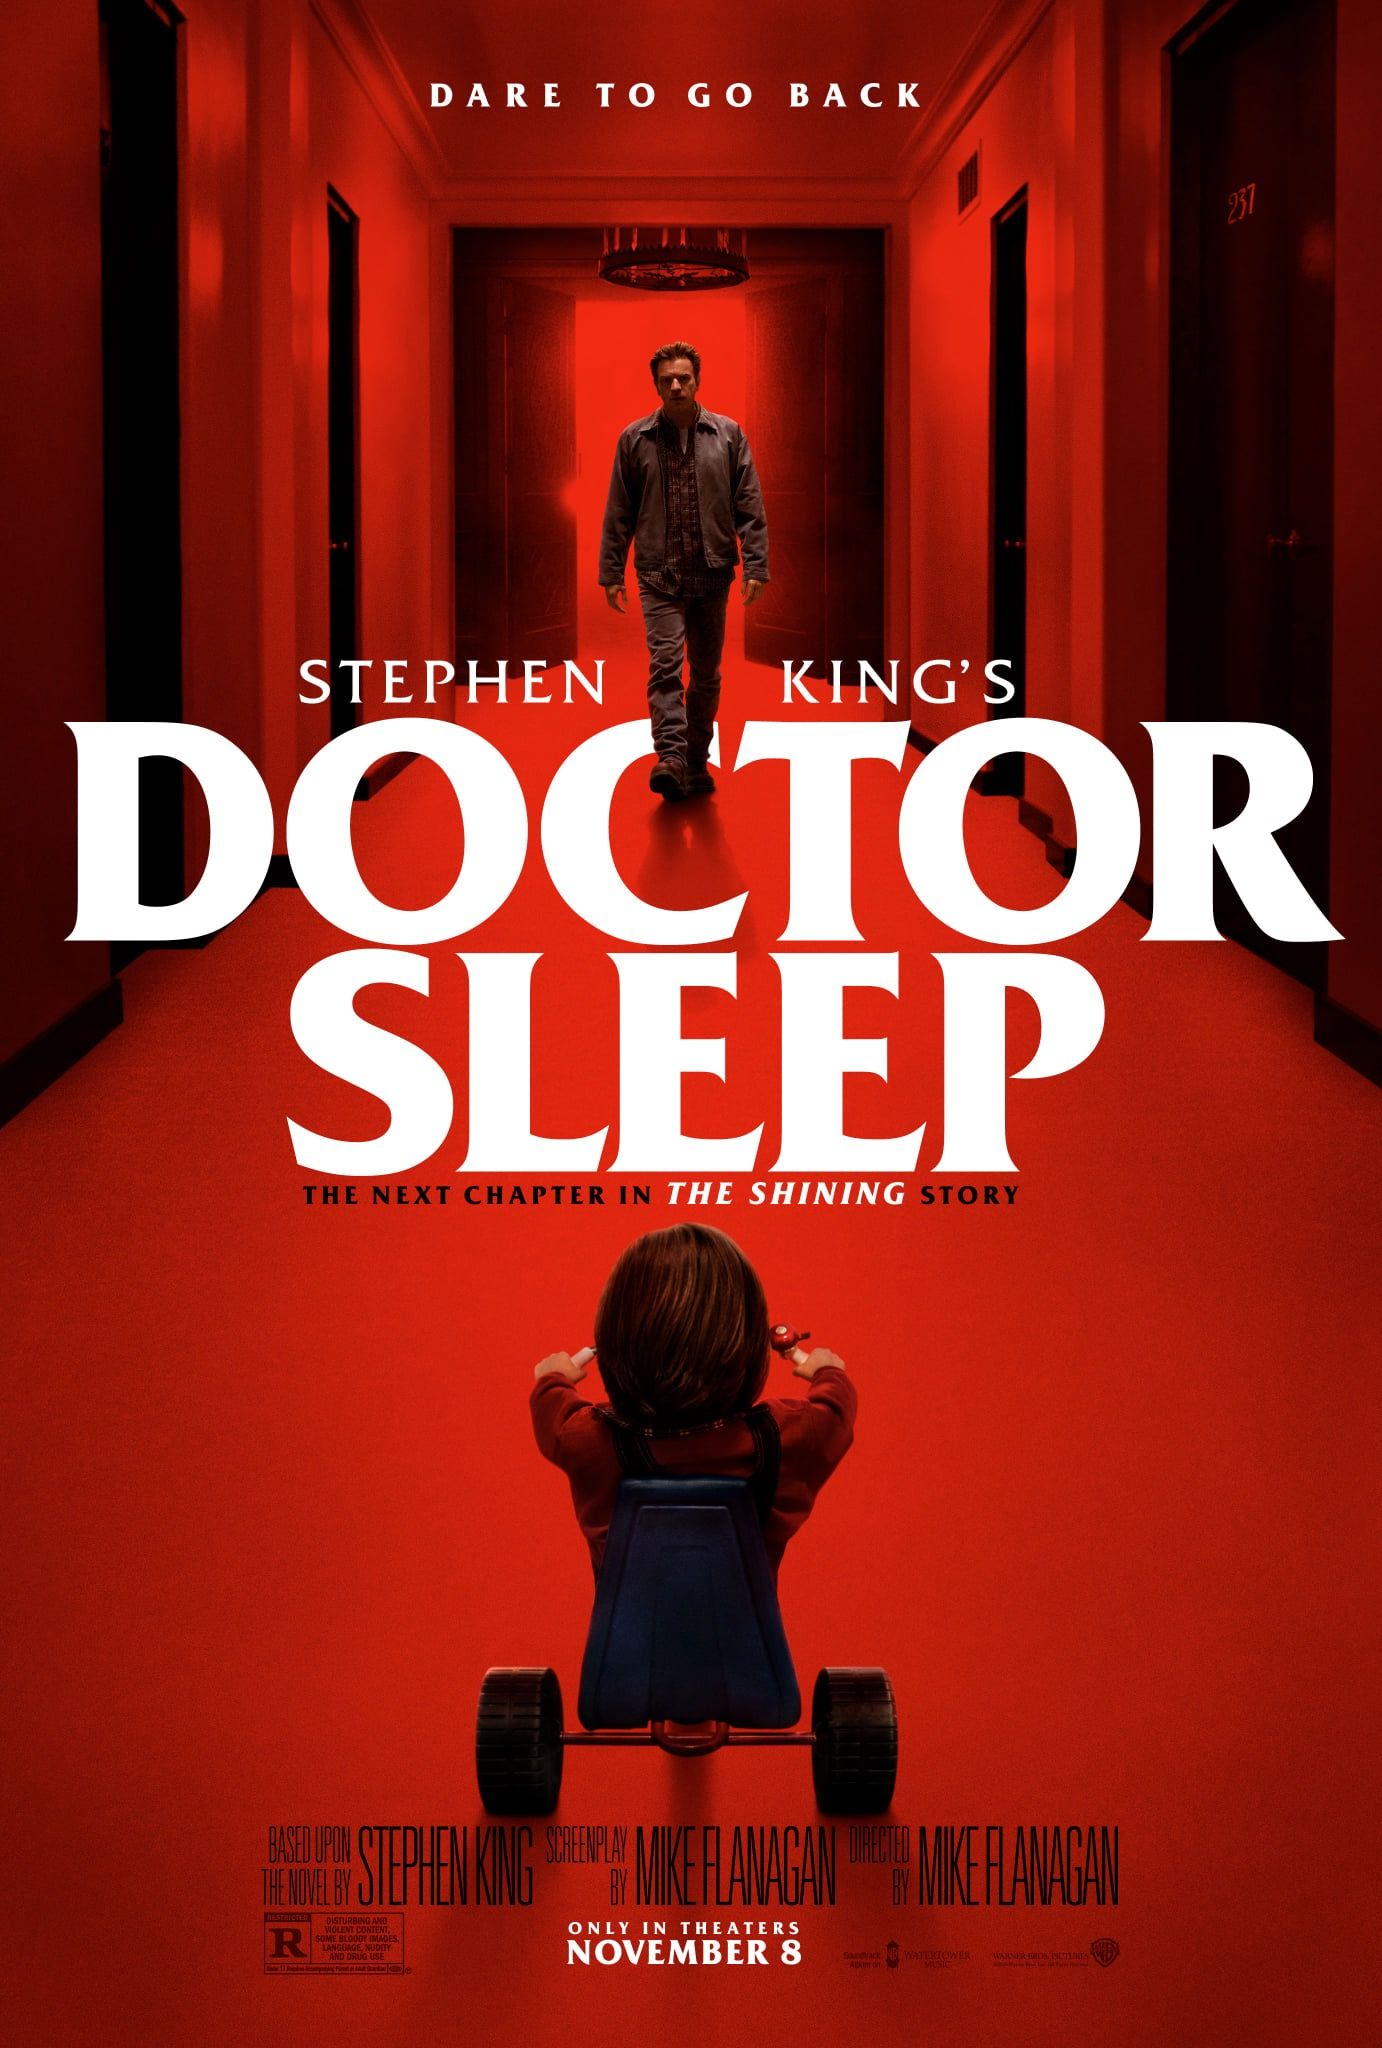 Doctor Sleep (2019) - FilmaX | Watch The Latest Movies And Tv Shows For  Free Only Here | Doctor sleep, Doctor sleep movie, Stephen king doctor sleep